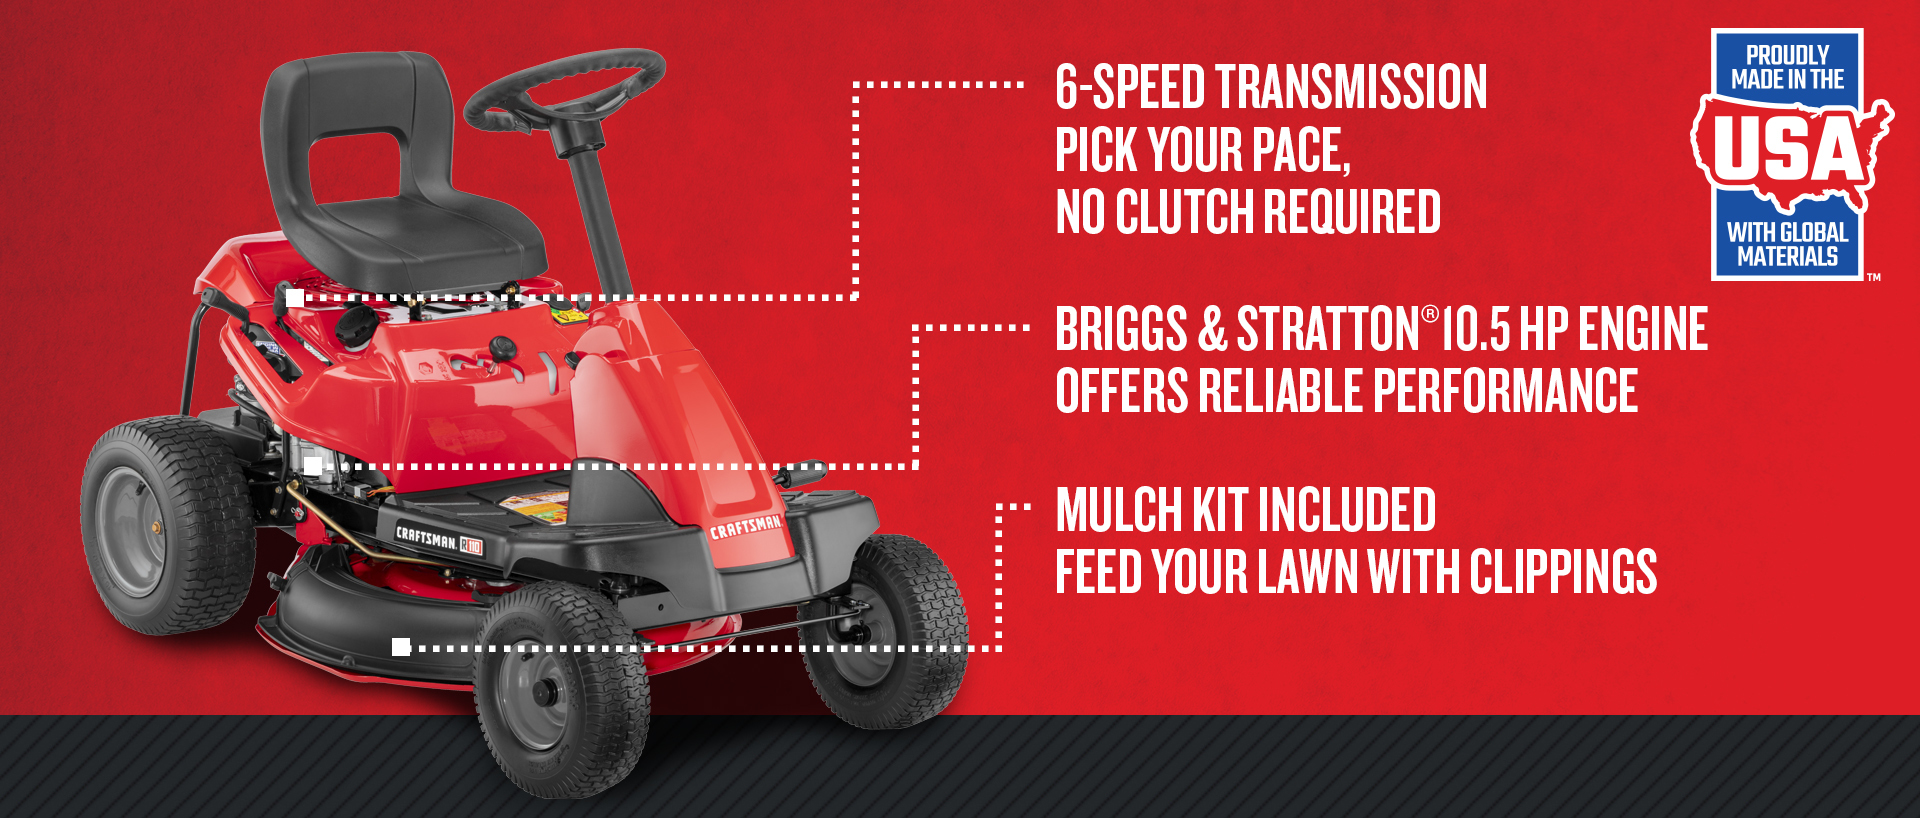 R110 10 5-HP Manual/Gear 30-in Riding Lawn Mower with Mulching Capability  (Included)